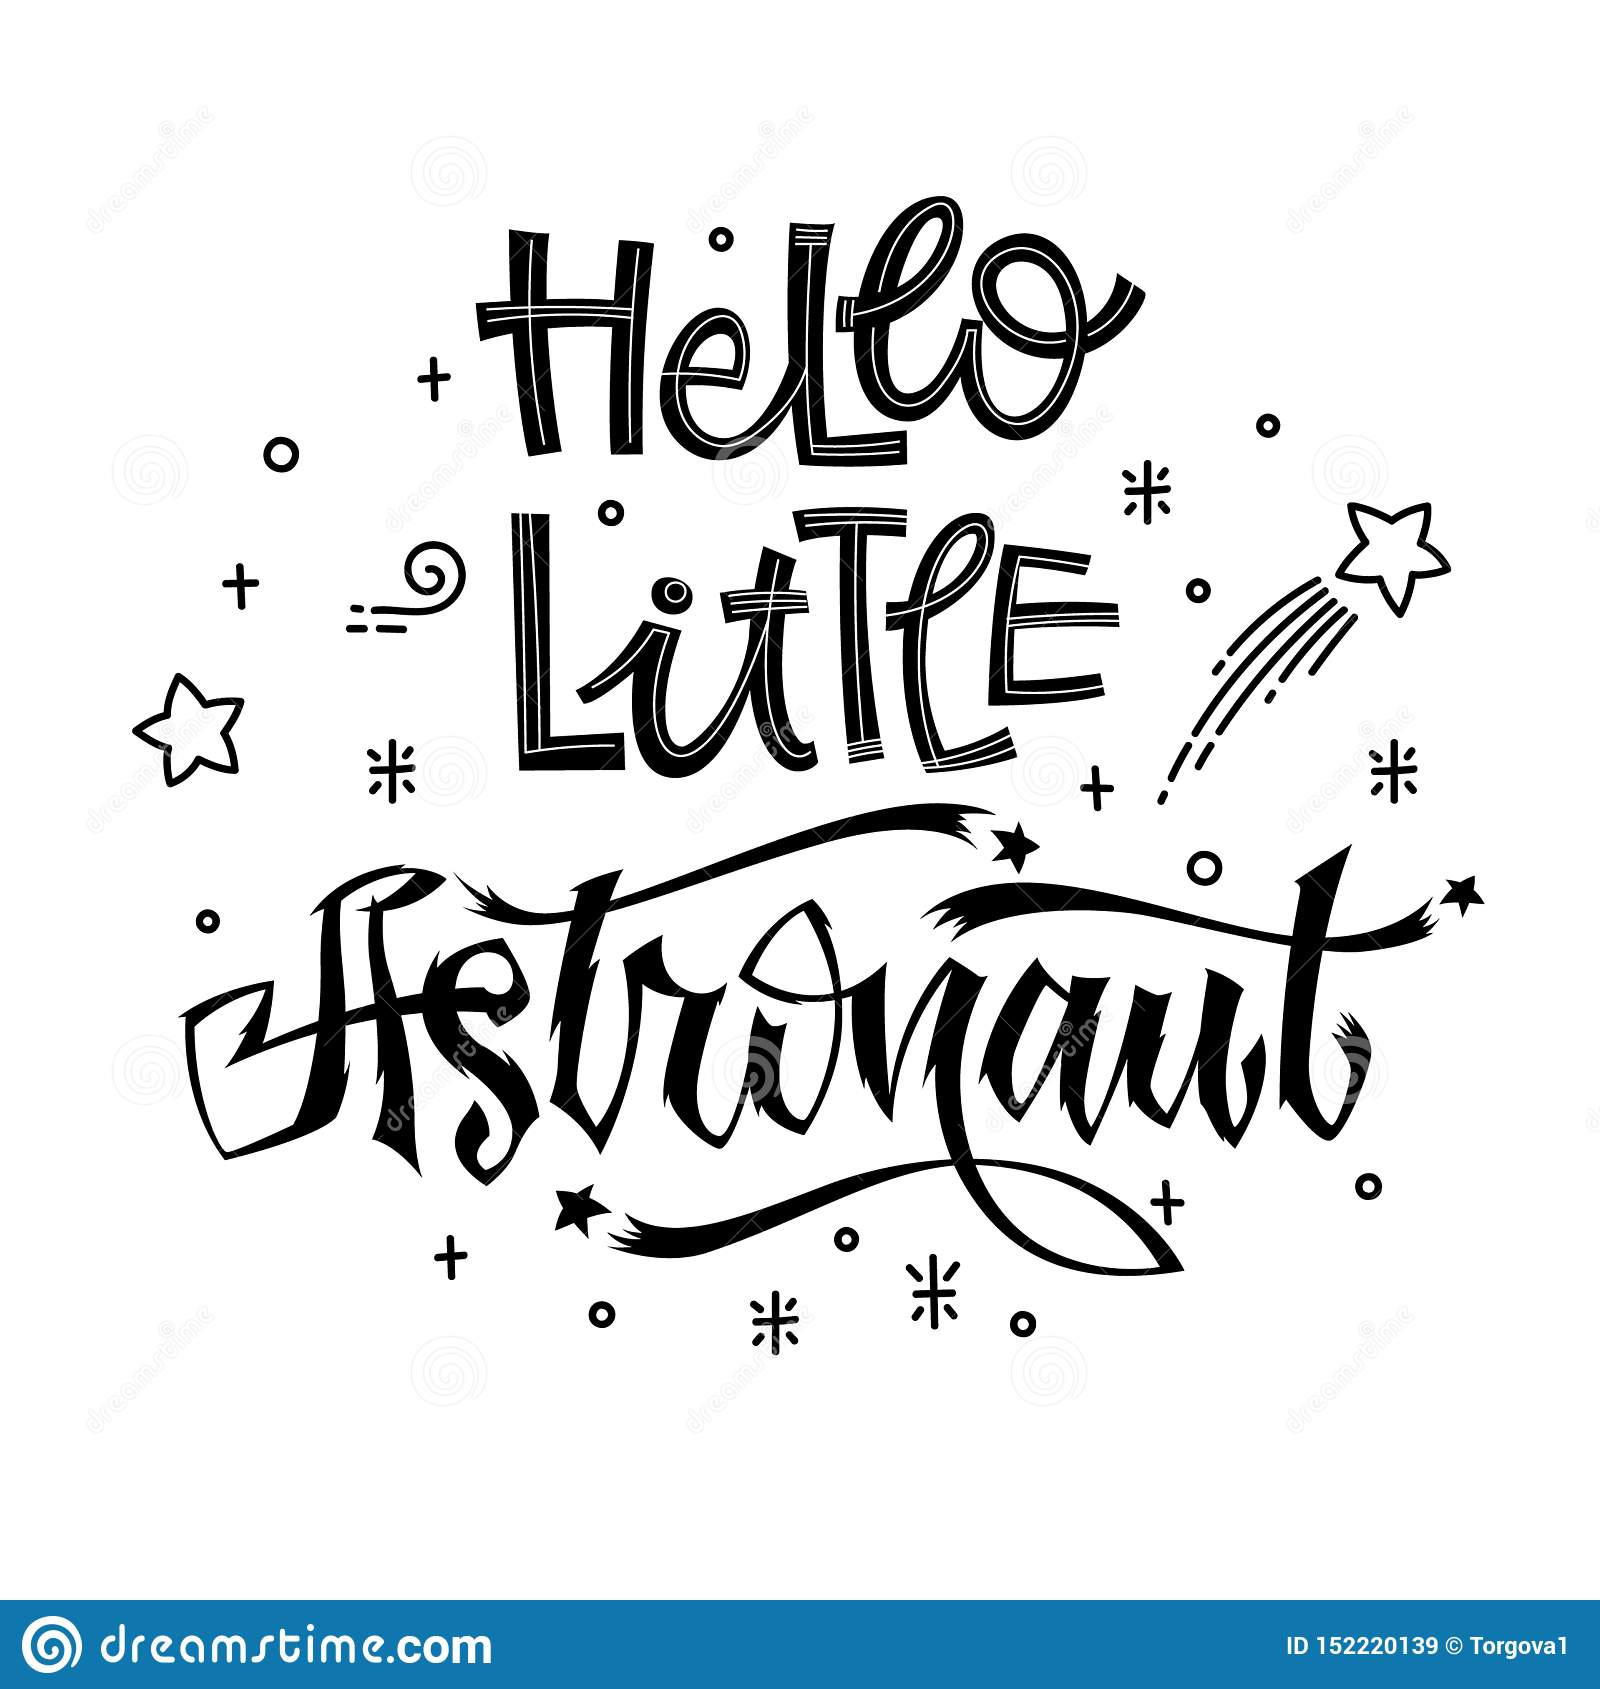 Hello Little Astronaut quote. Baby shower hand drawn lettering logo phrase